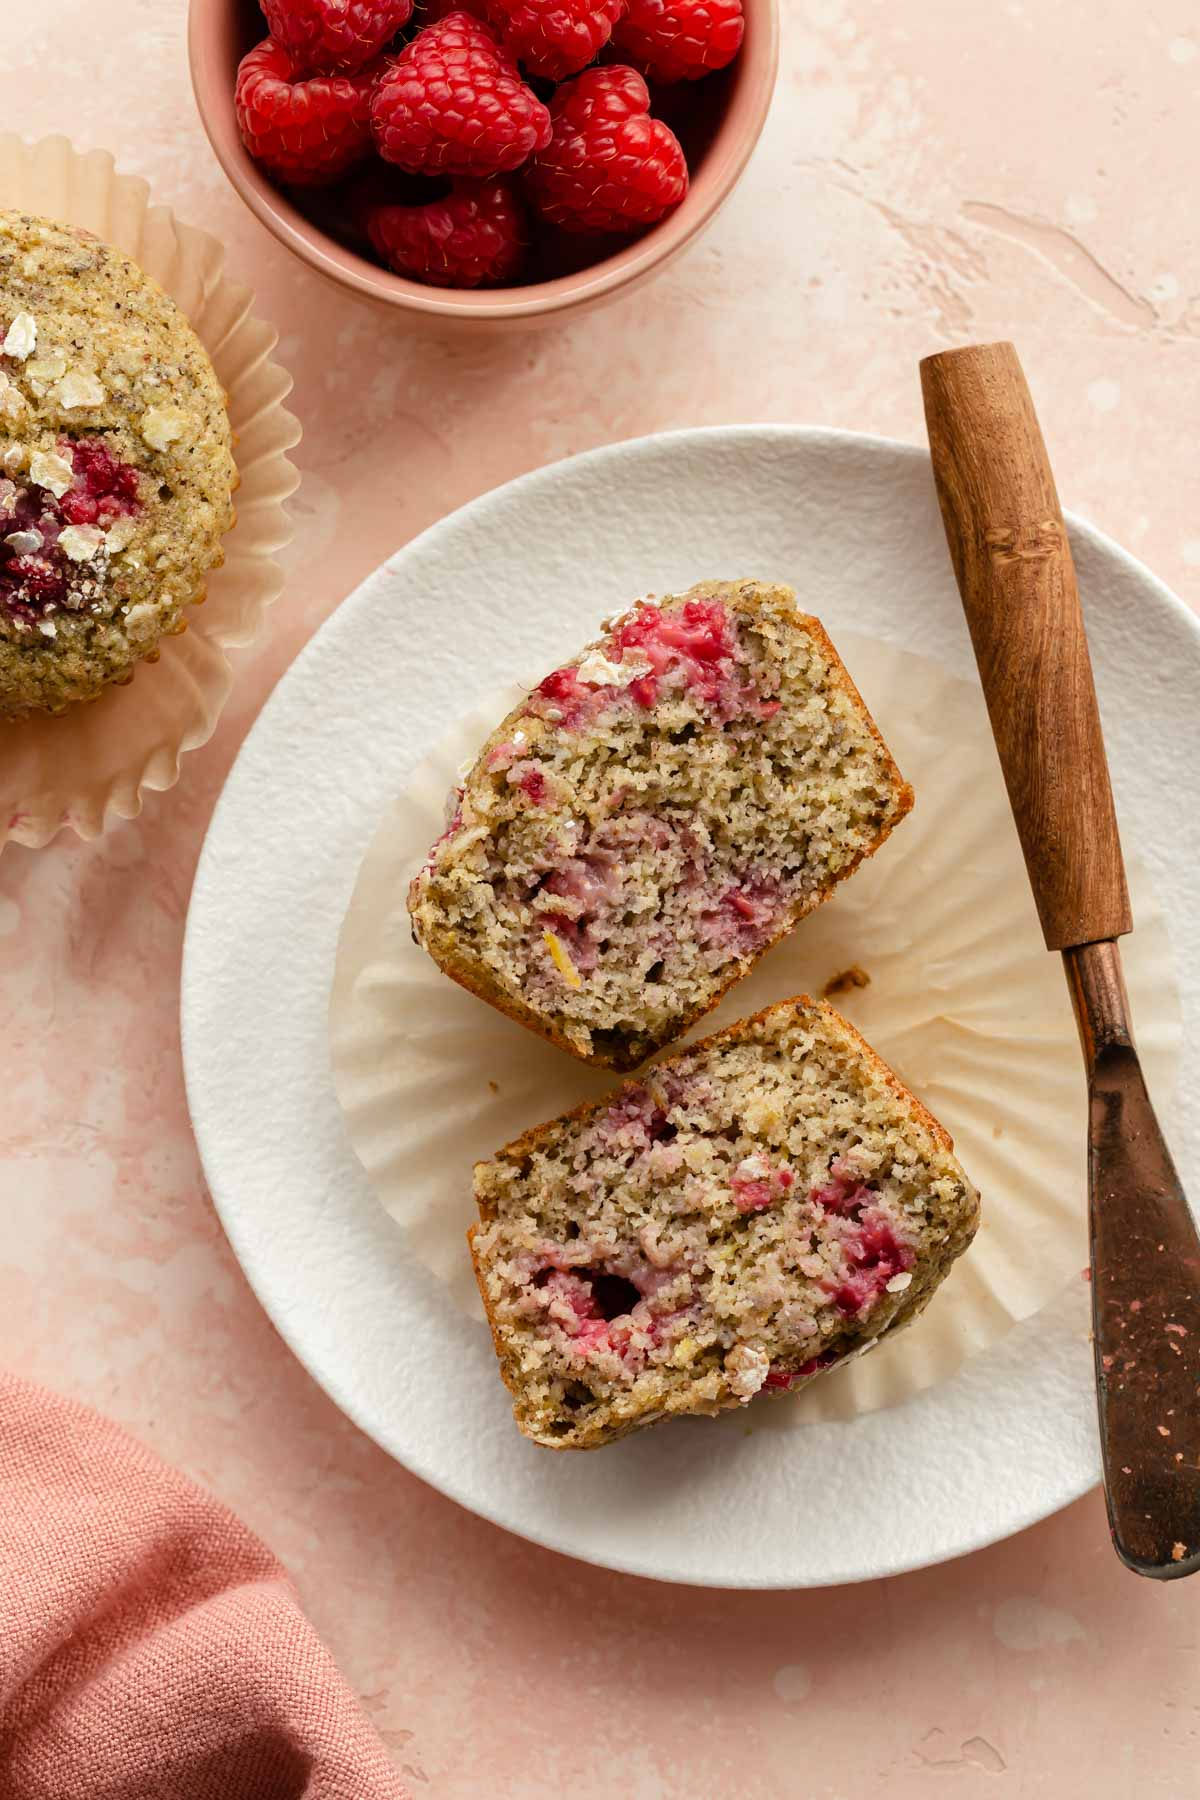 Overhead view of a raspberry lemon muffin cut in half and exposing the tender crumb texture.